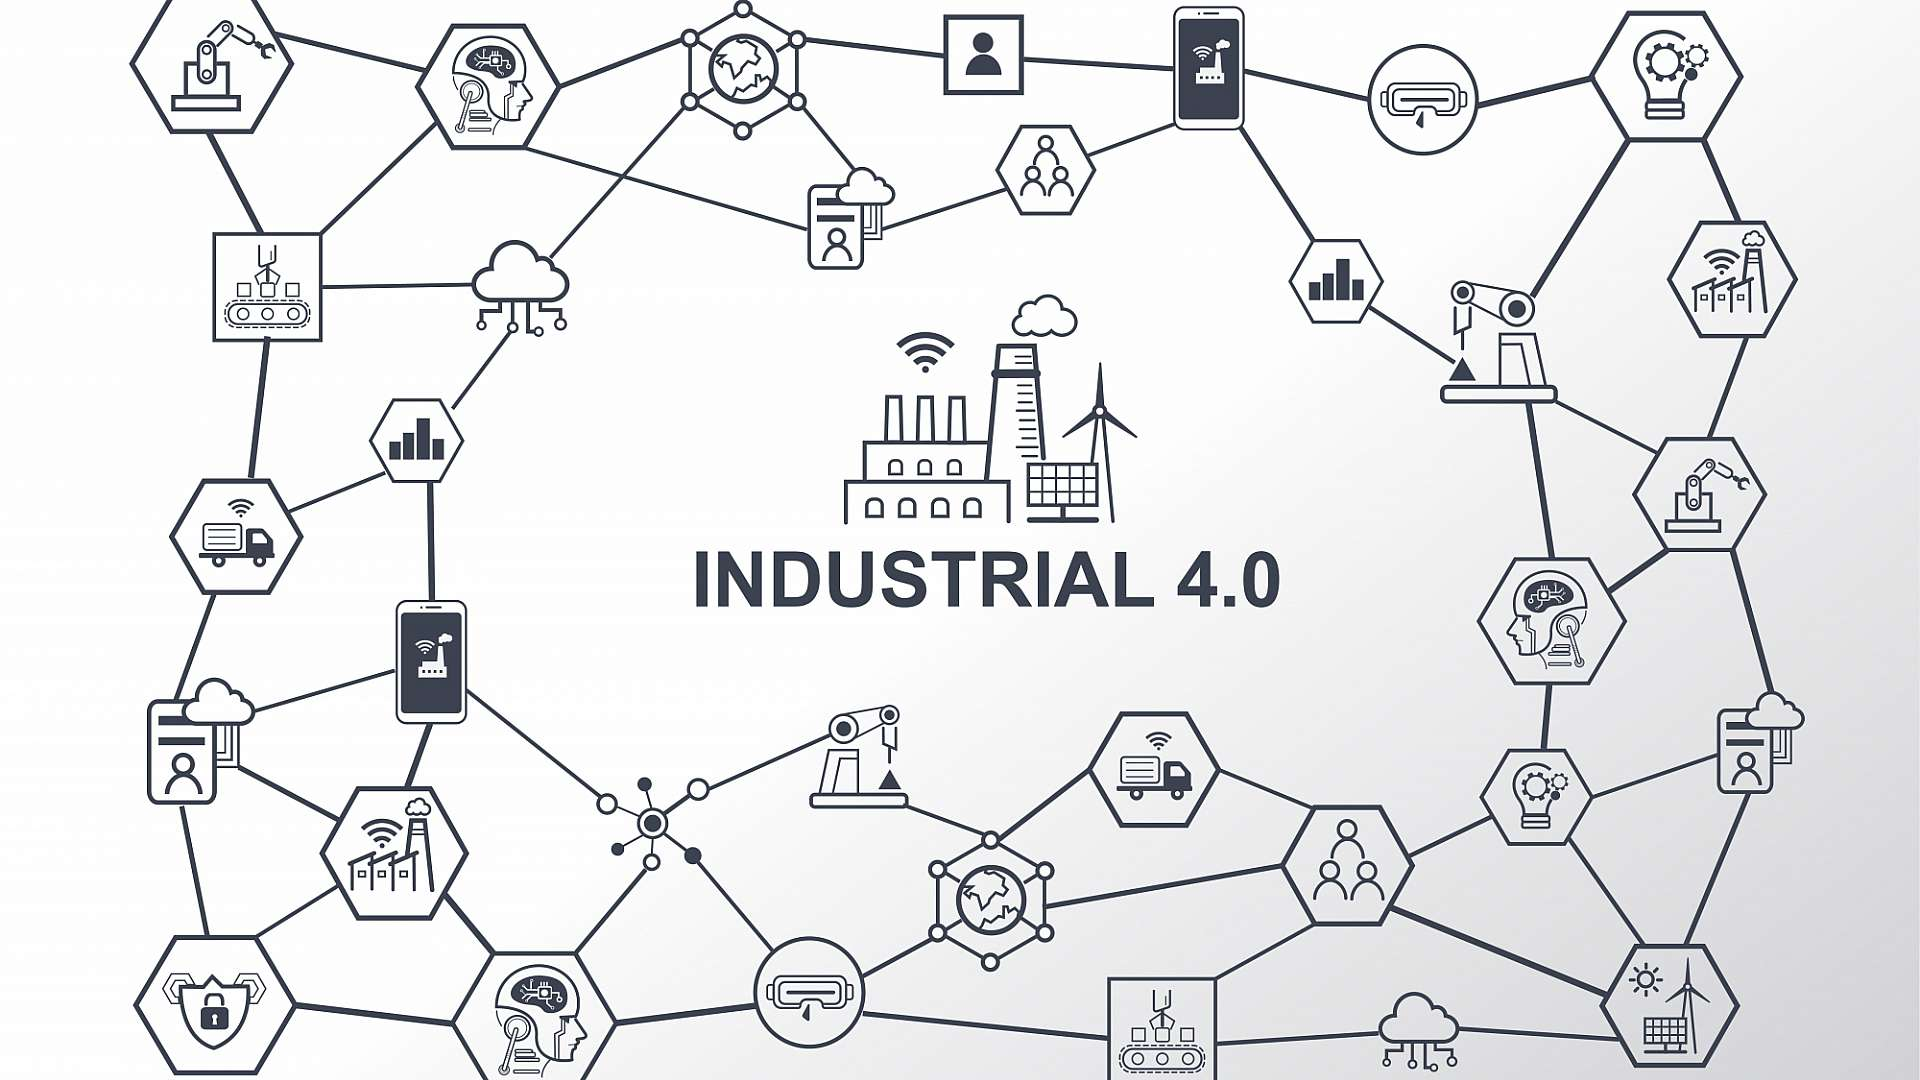 Industry 4.0 digitally connects the entire supply chain, joining product development with manufacturing workspaces, logistics and packaging